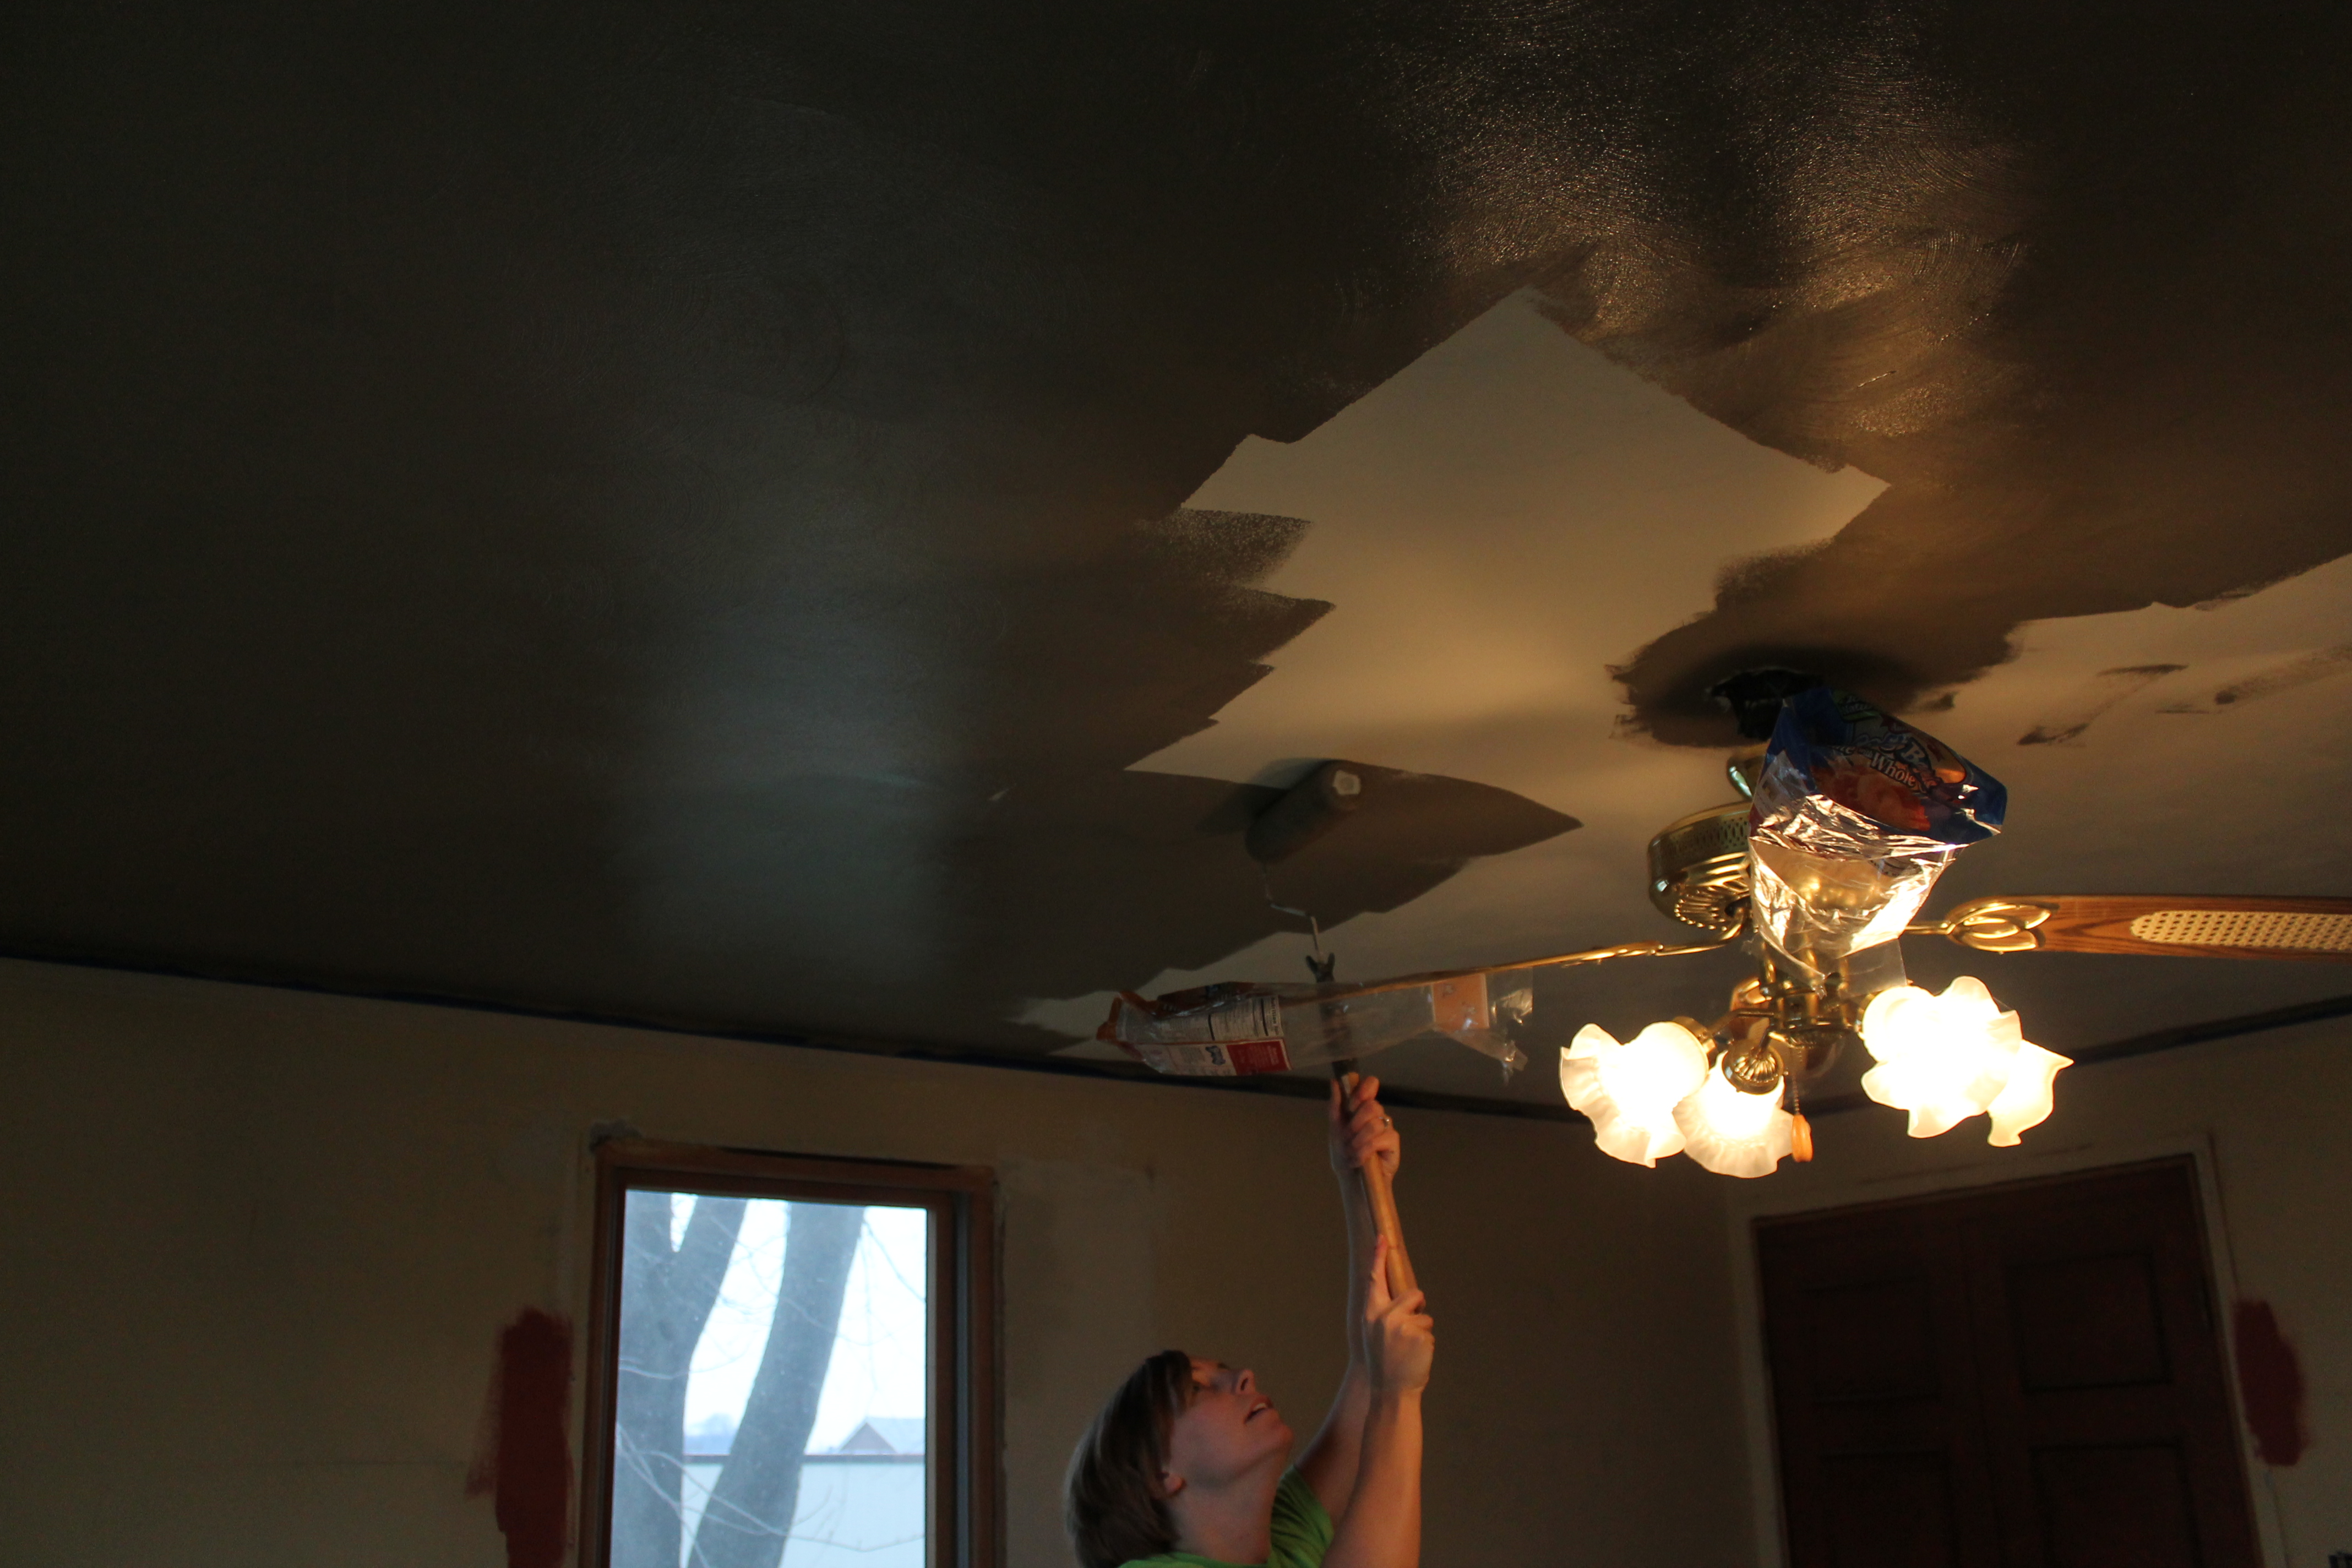 painting a ceiling dark whilst having a terrible haircut